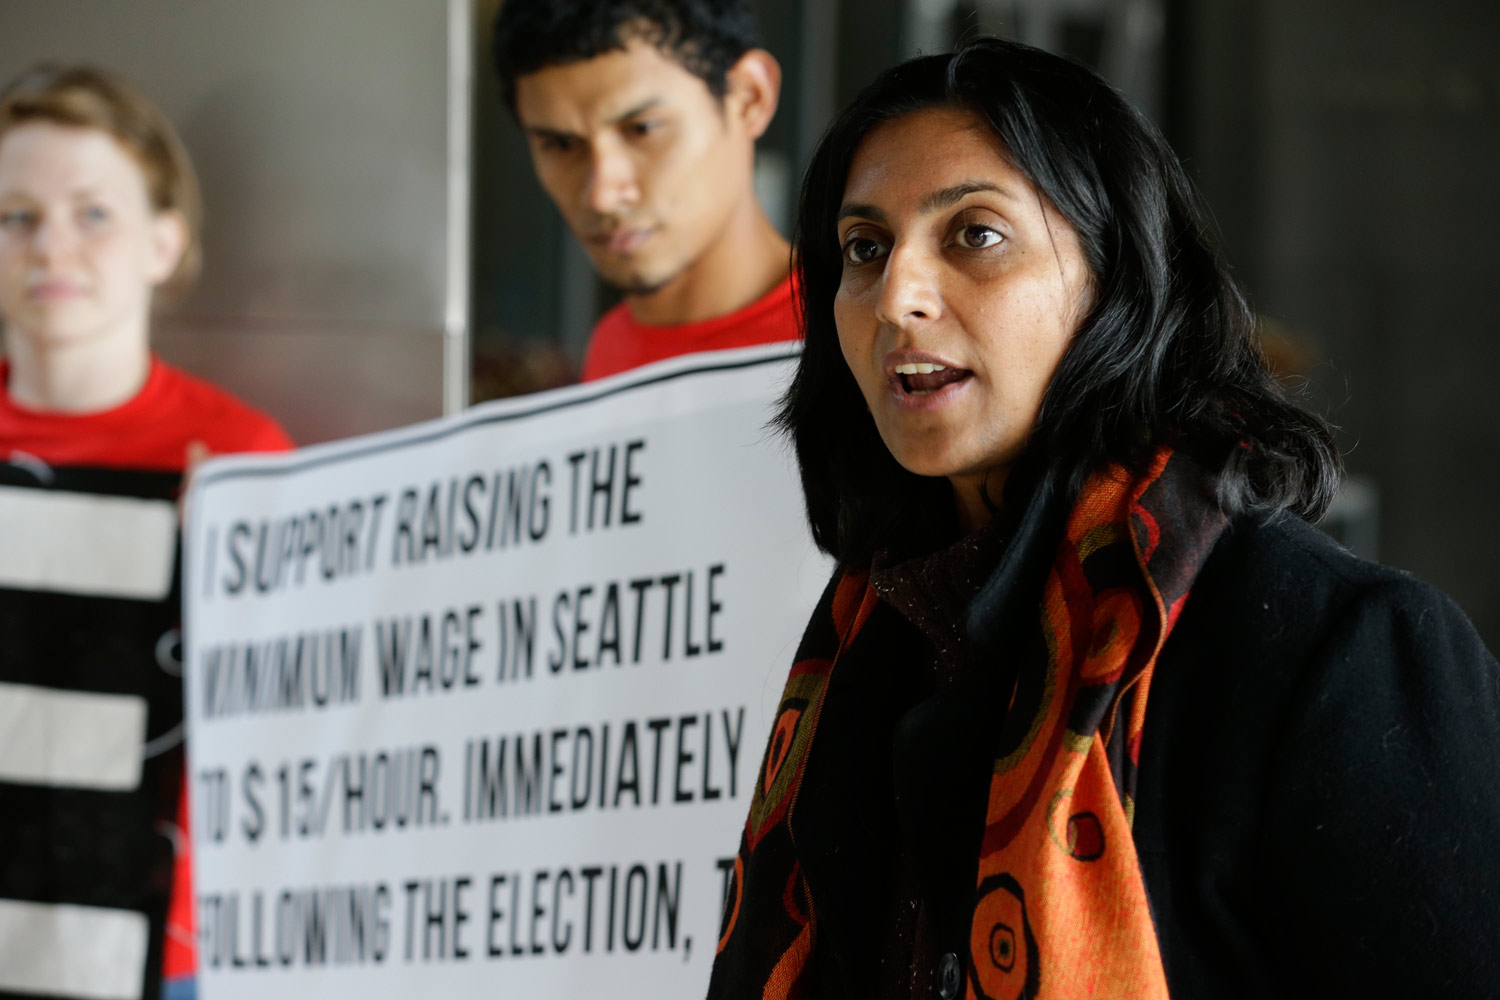 Kshama-Sawant-right-AP-PhotoTed-S.-Warren